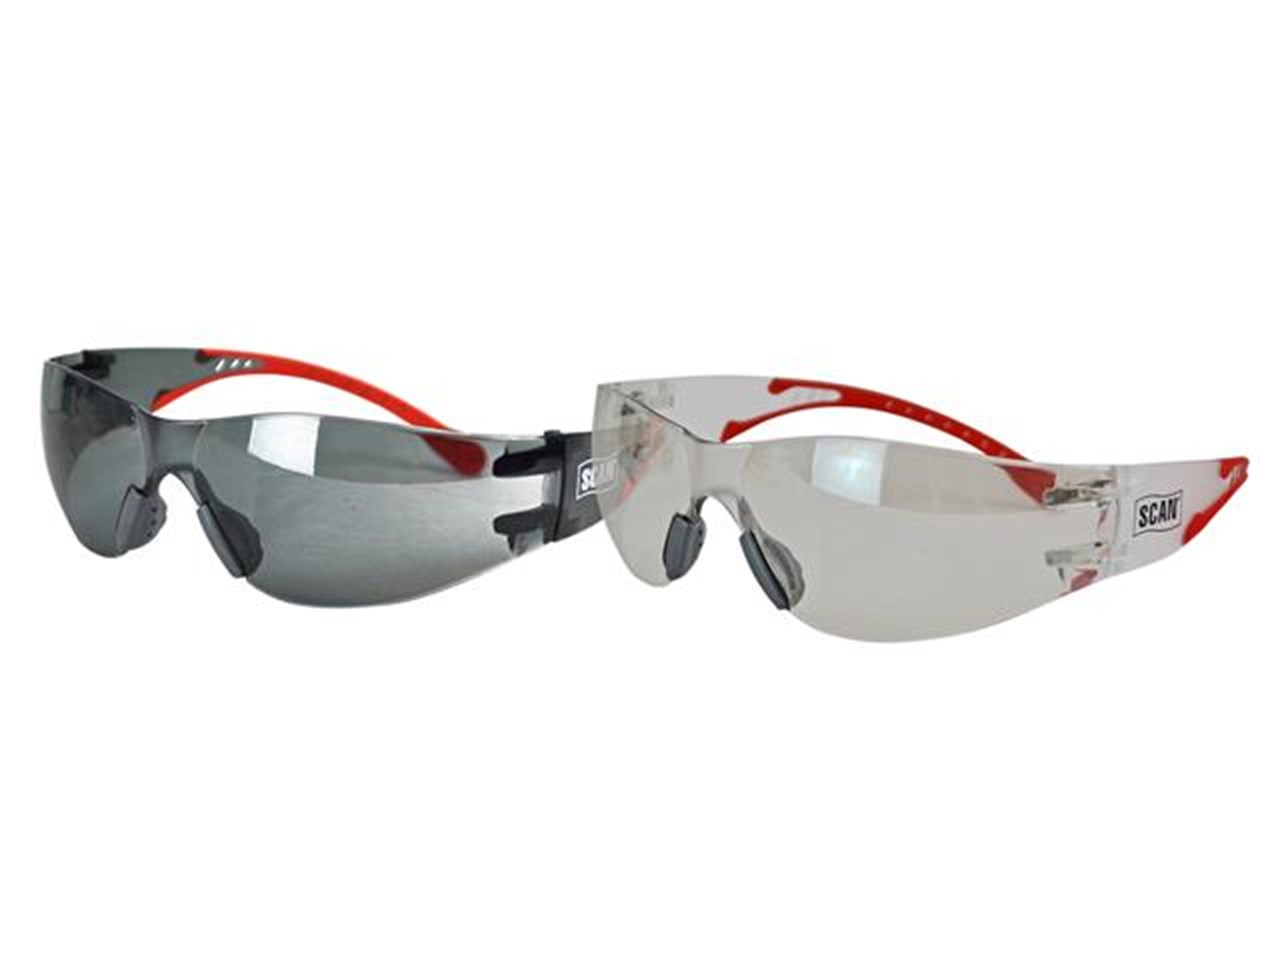 Scan Flexi-Spec Safety Glasses Twin Pack (Clear Lens & Smoked Lens)